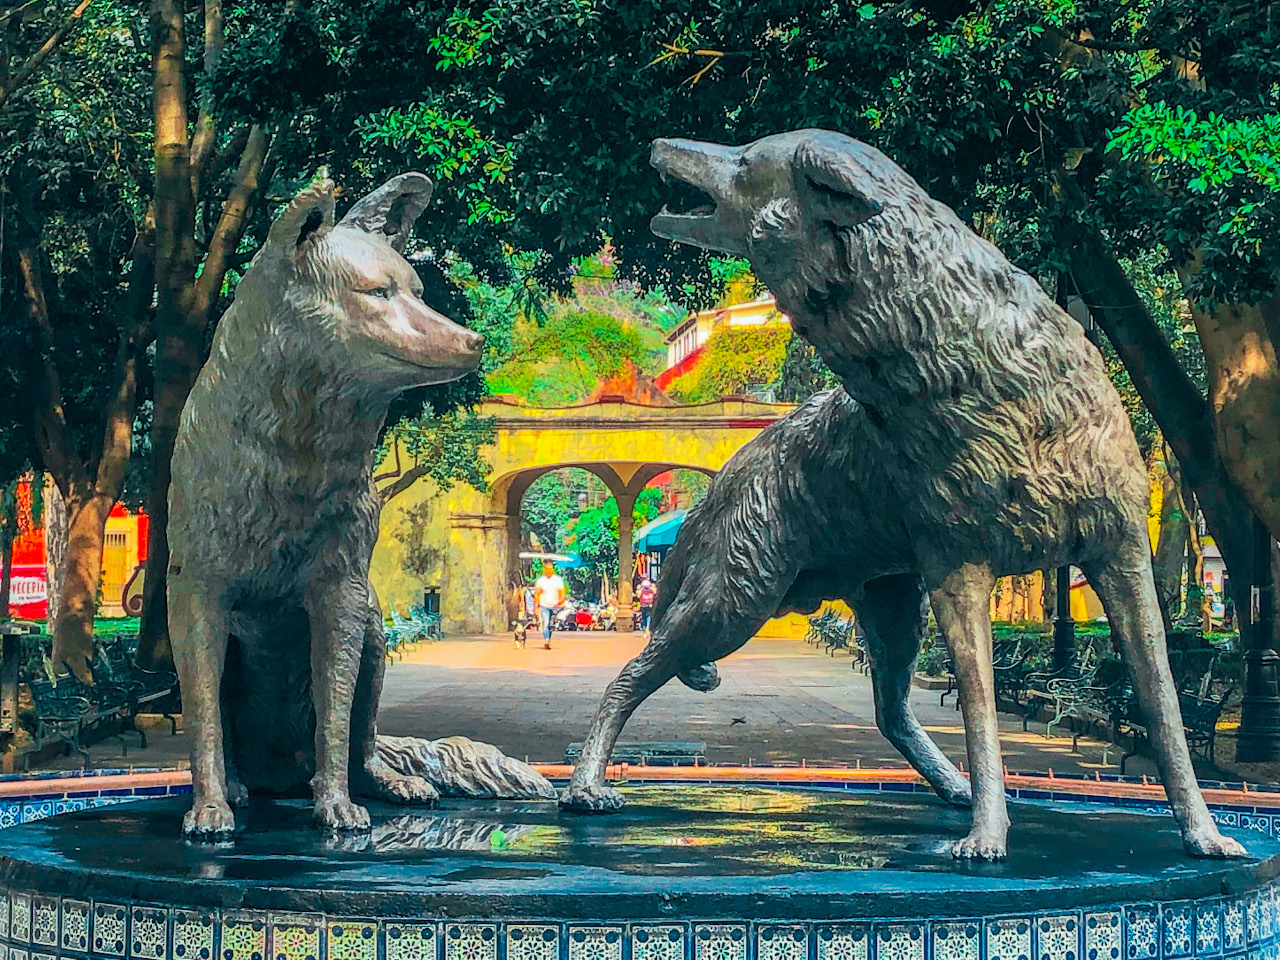 Coyoacan - Coyote Fountain should be on your Mexico City itinerary. Here are the best things to do in Mexico City in 5 days